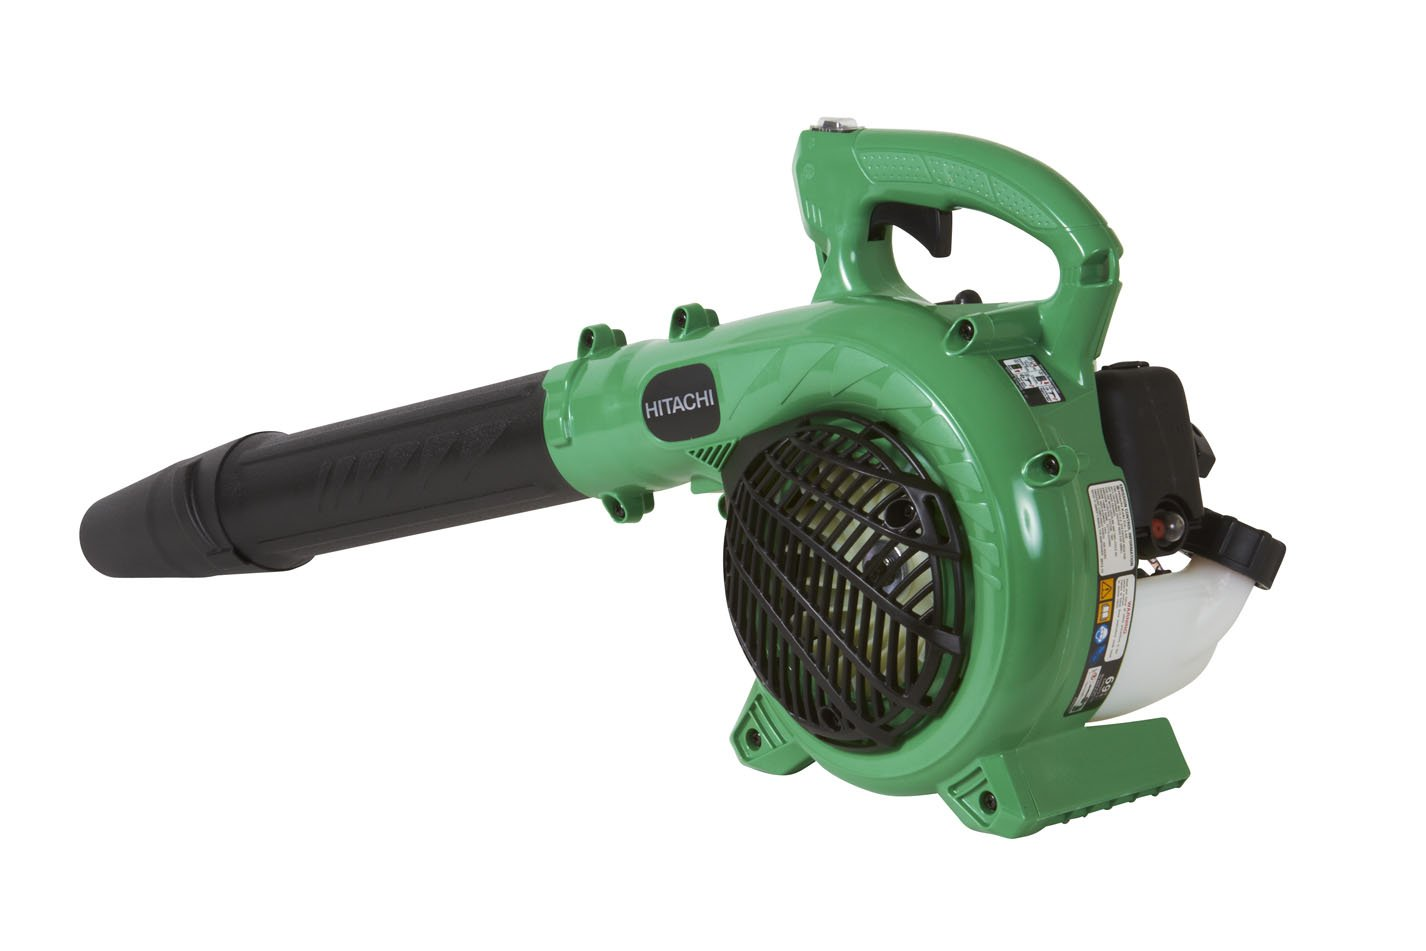 Gas Powered Blowers : Leaf blower hitachi gas powered vacuum patio lawn garden